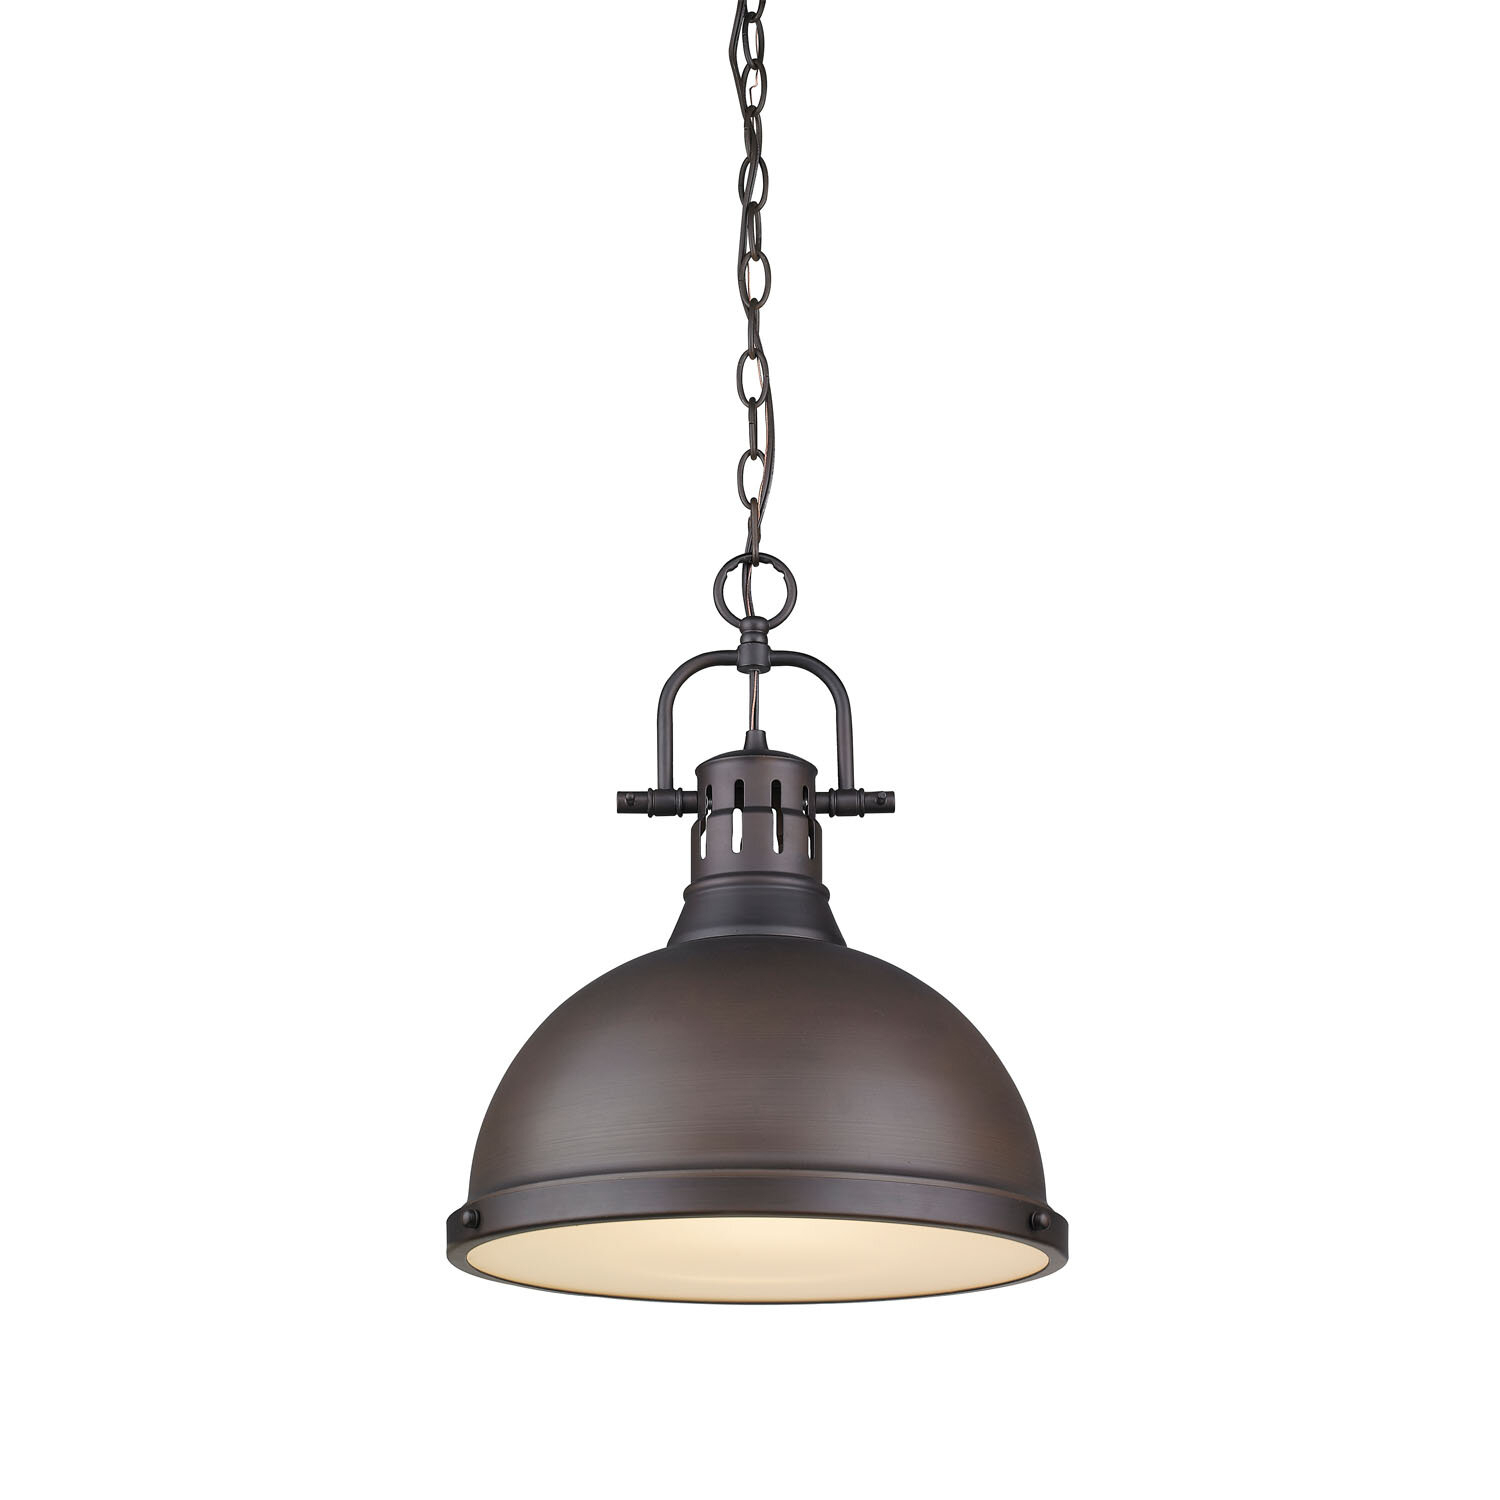 Bodalla 1 Light Single Dome Pendant Regarding Bodalla 1 Light Single Bell Pendants (View 19 of 30)